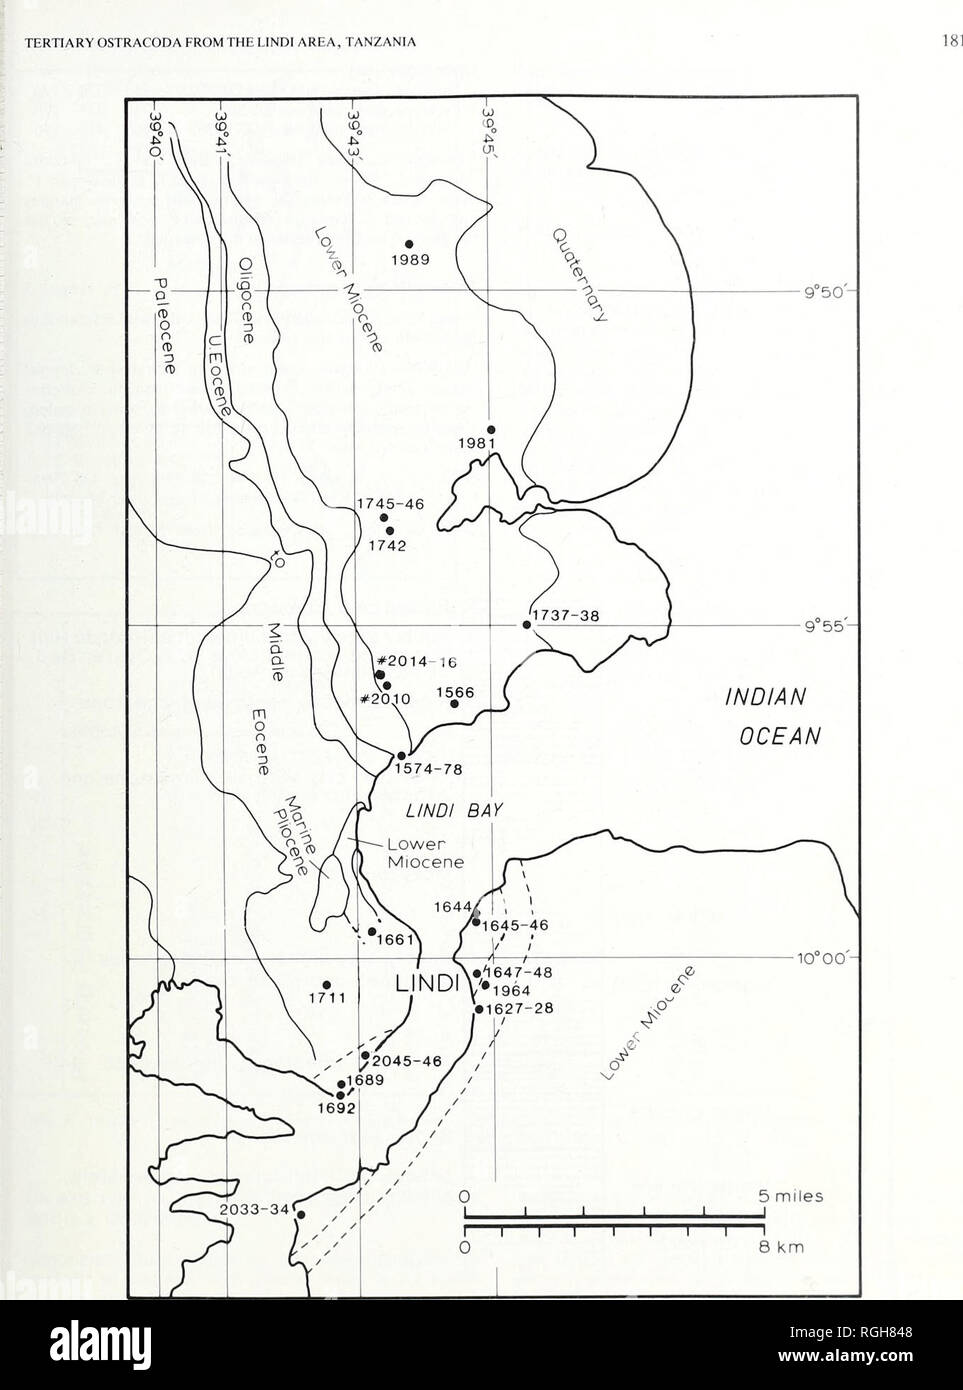 hight resolution of geology fig 3 sample location map i indi tanzania approx position only k rm 1 3 lies off the south cast corner ot the map